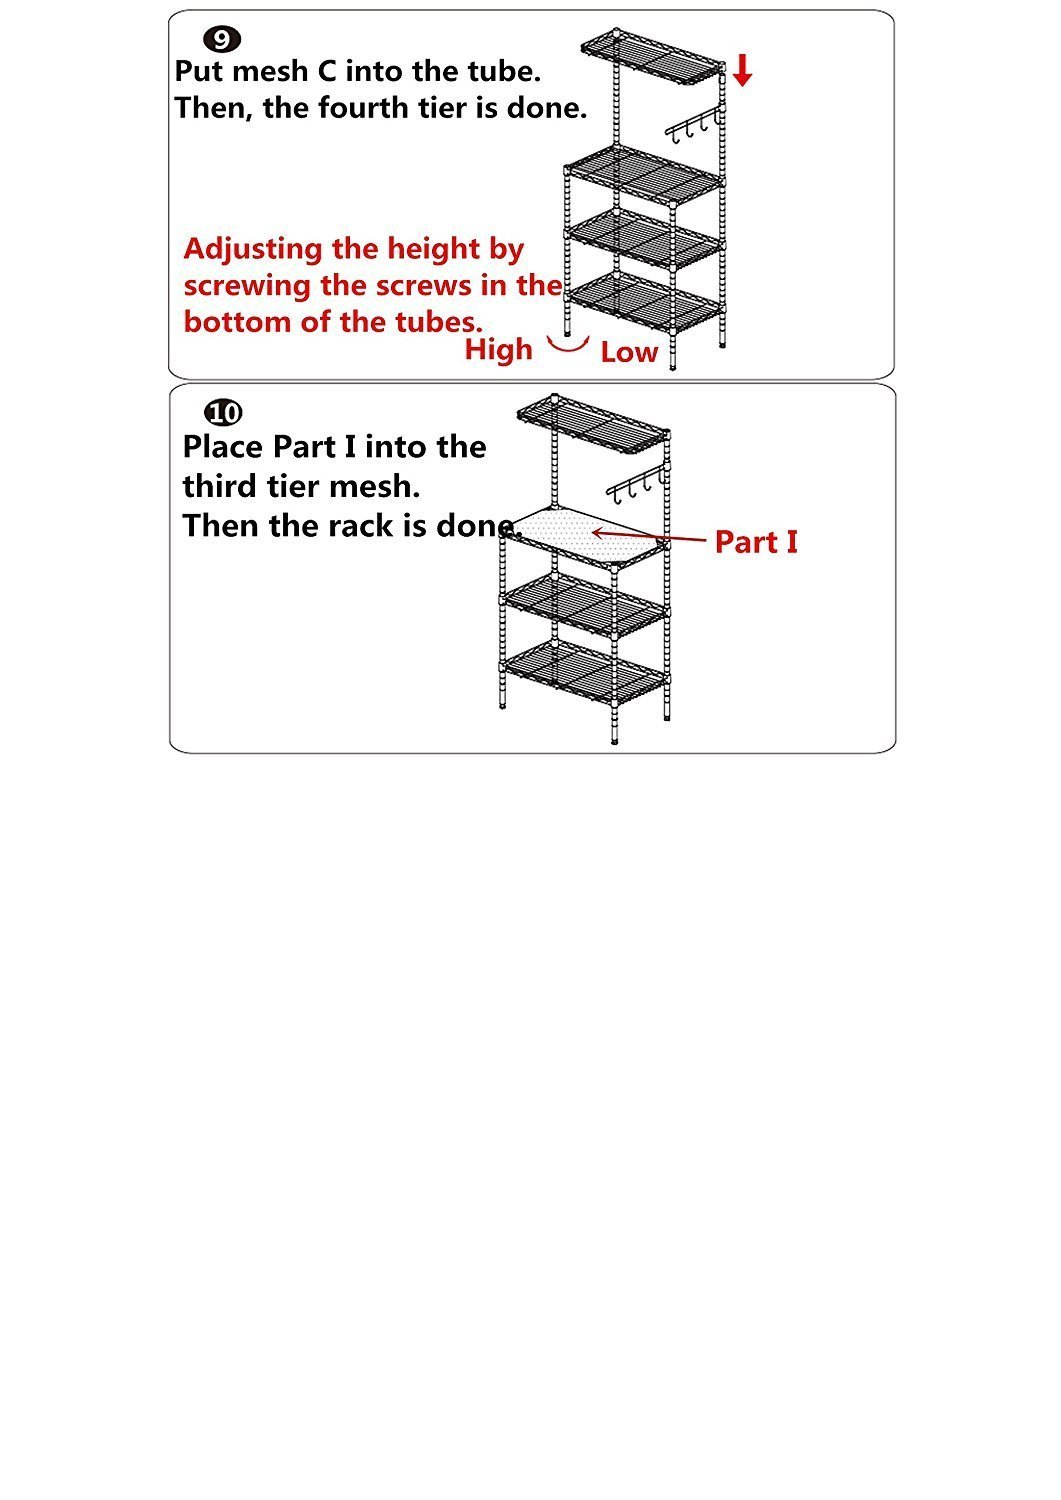 Amazon.com - Aries 3-Tier Bakers Rack Utility Microwave Stand Kitchen  Storage Cart Workstation, US STOCK - Standing Baker's Racks